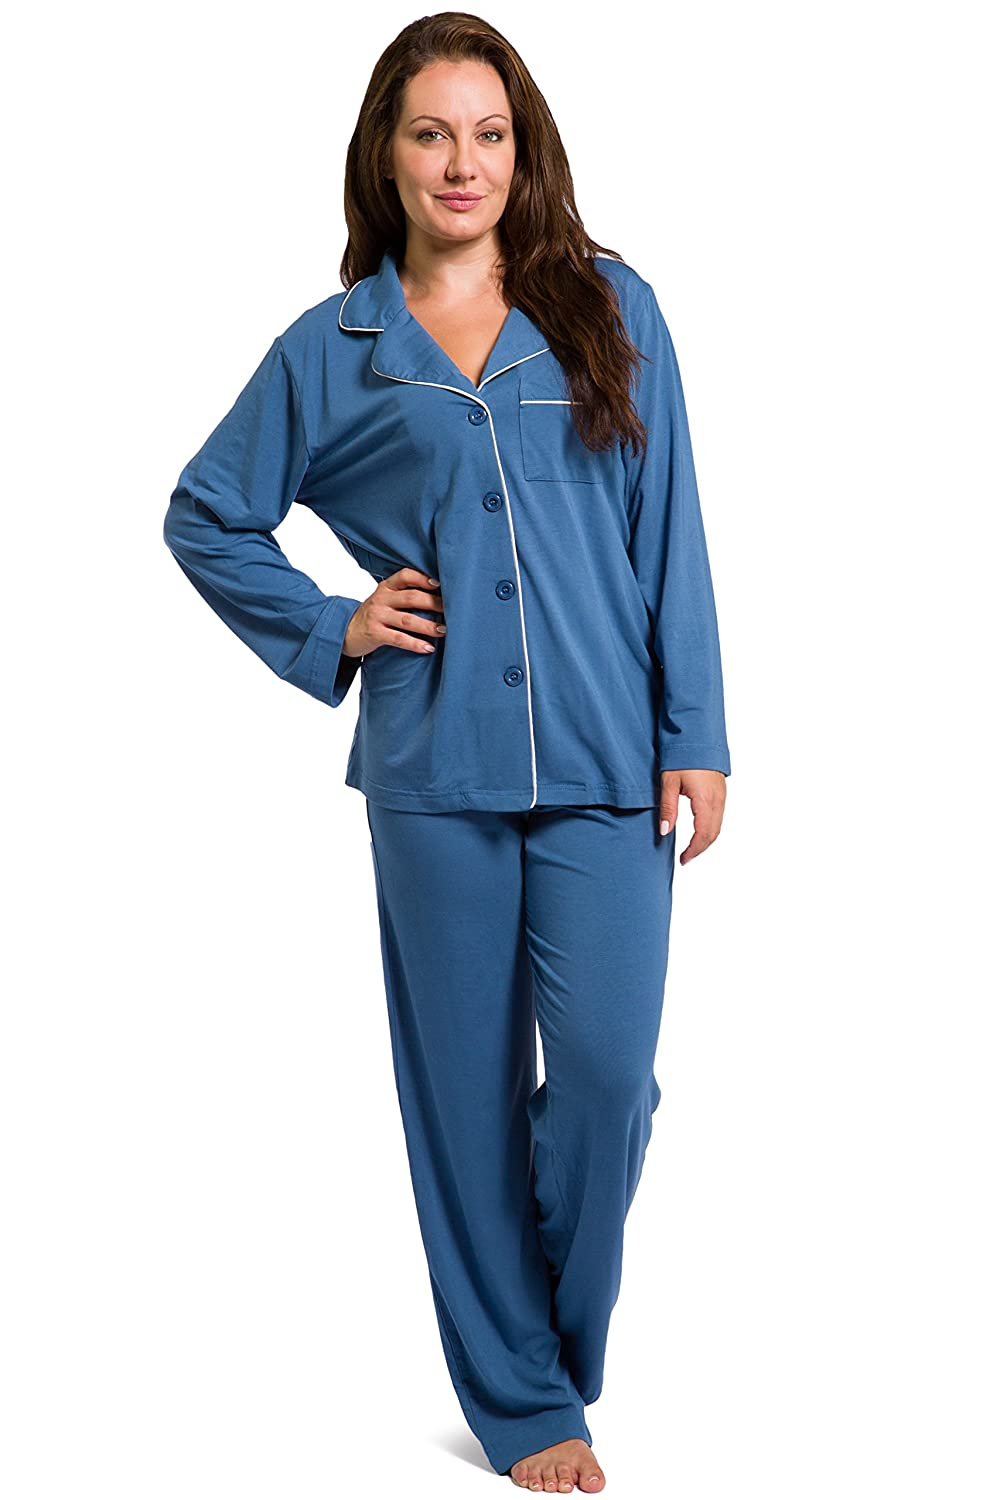 Women's Pajama Set; Long Sleeve, Eco Friendly Jersey Fabric